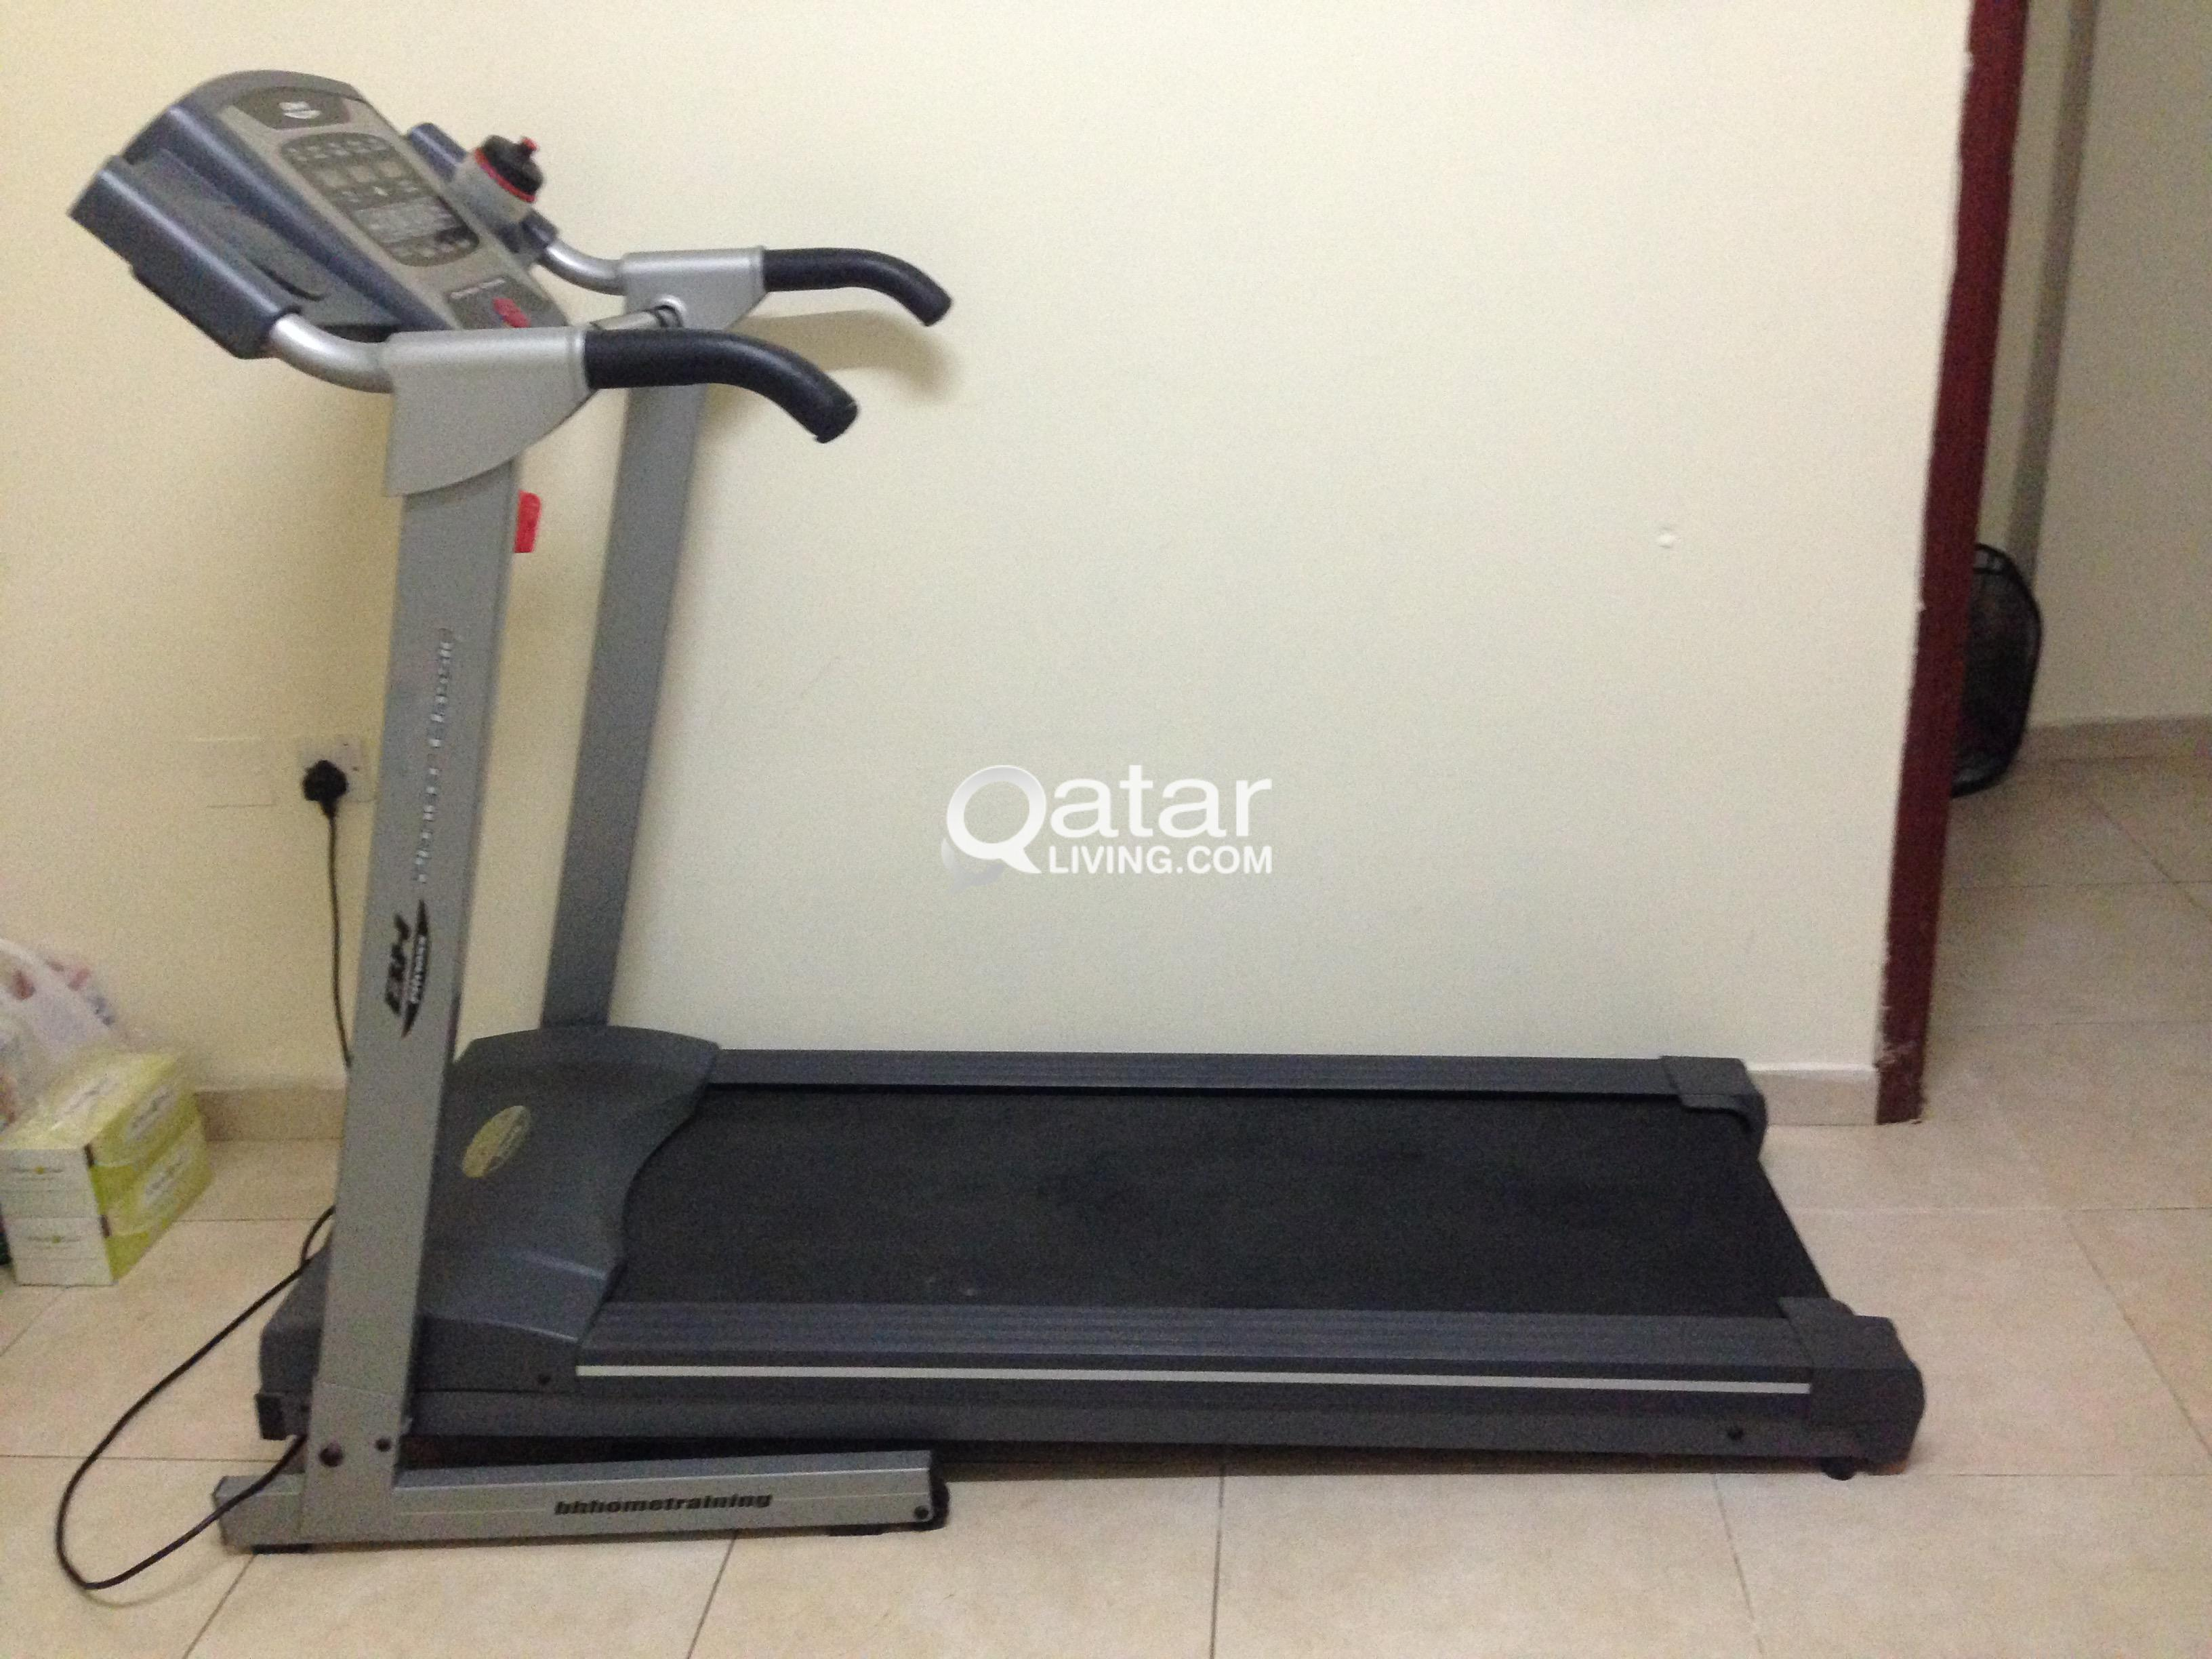 Treadmill for Sale | Qatar Living